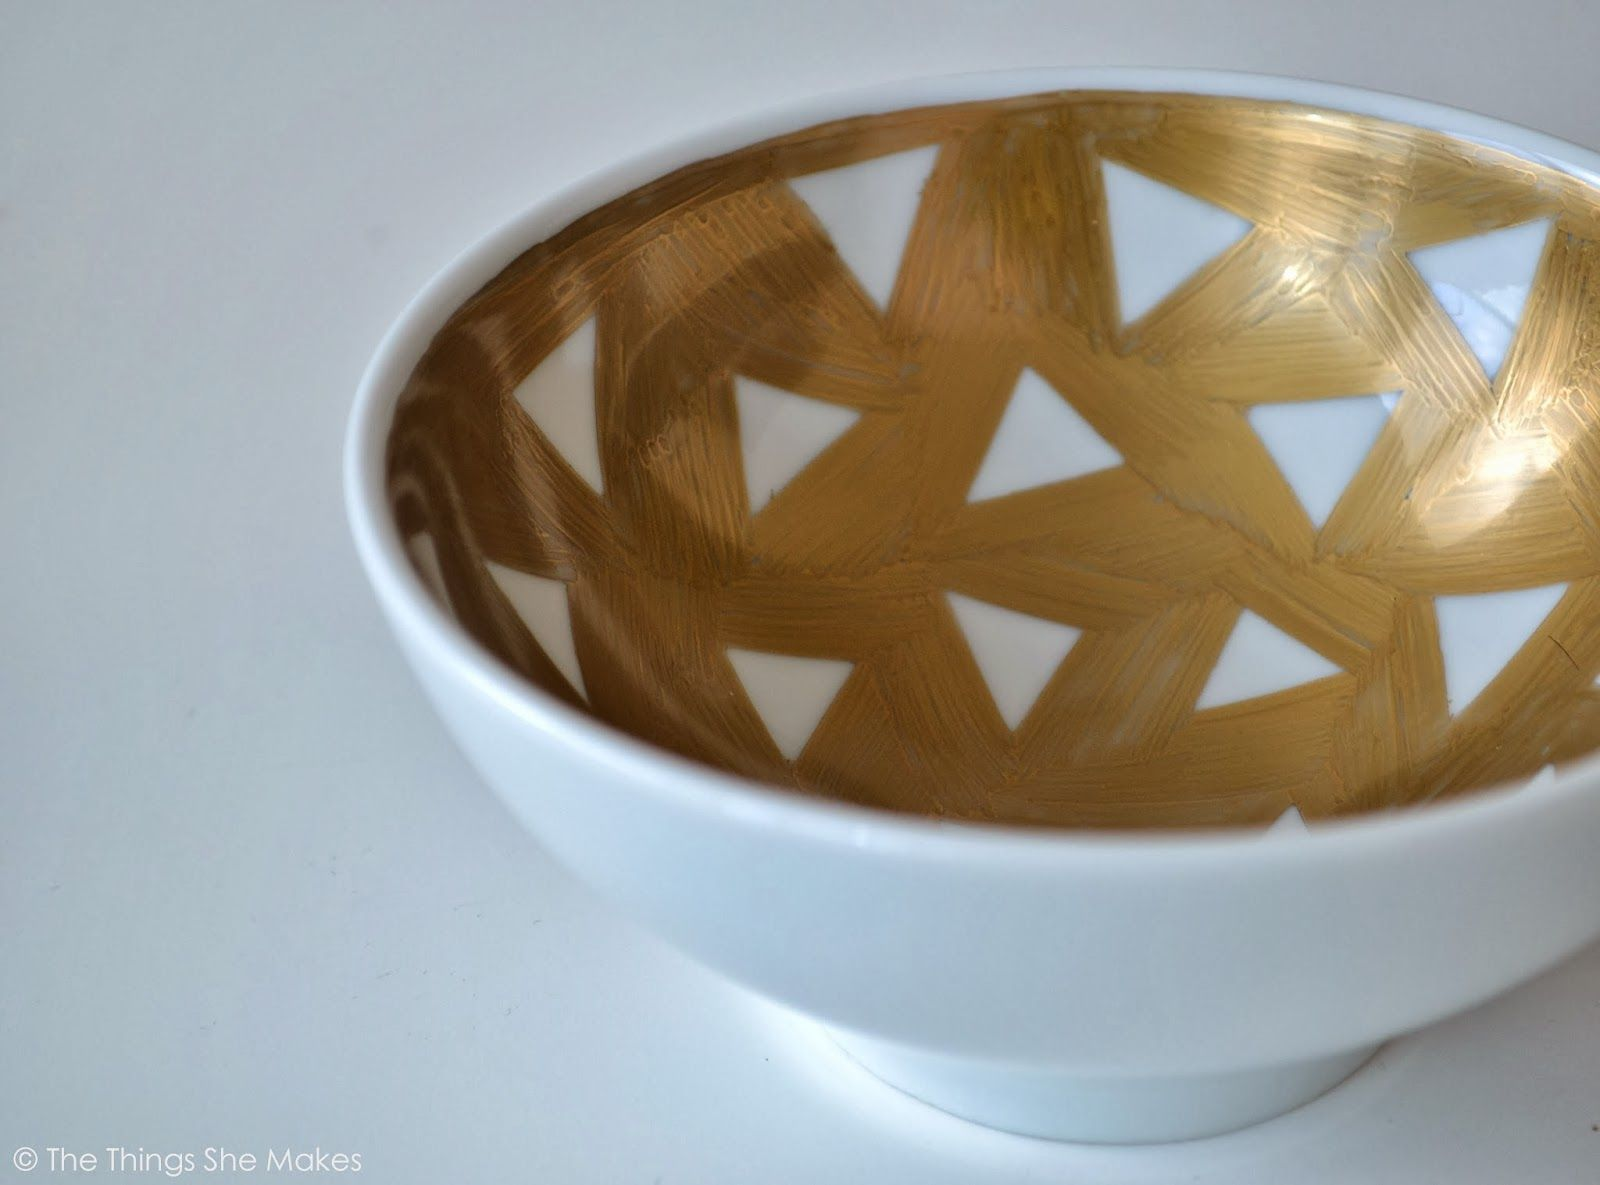 The Things She Makes: How to Make a Gold Sharpie Bowl